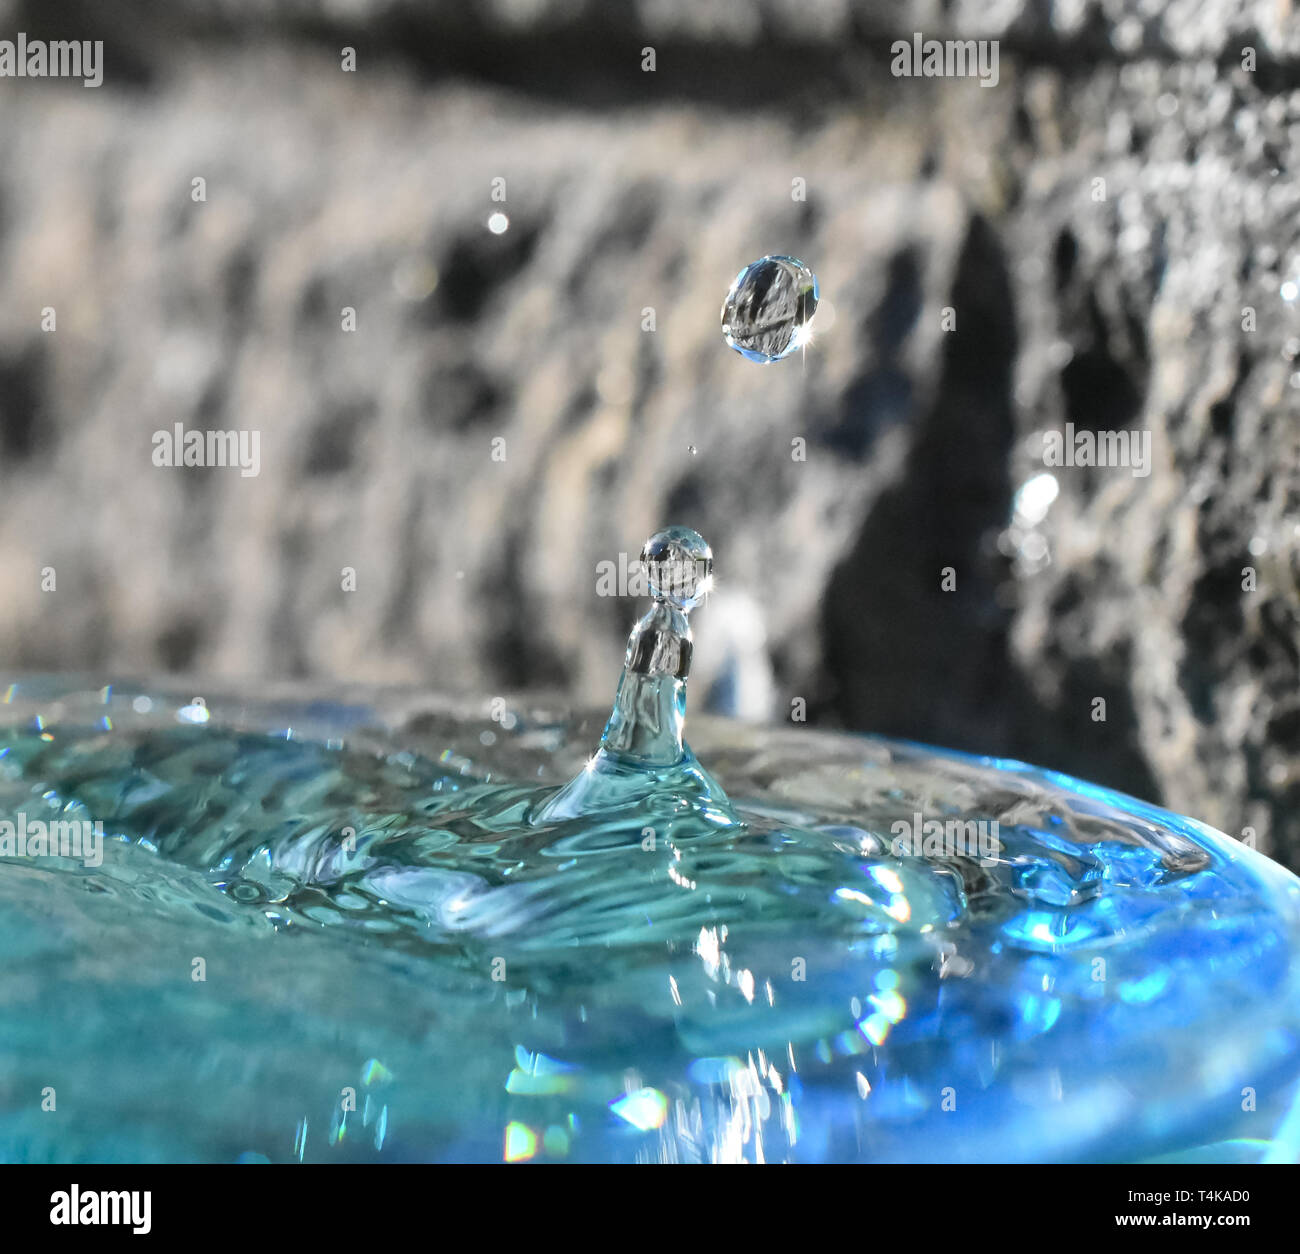 Water droplet formation showing reflections in the sun - Stock Image